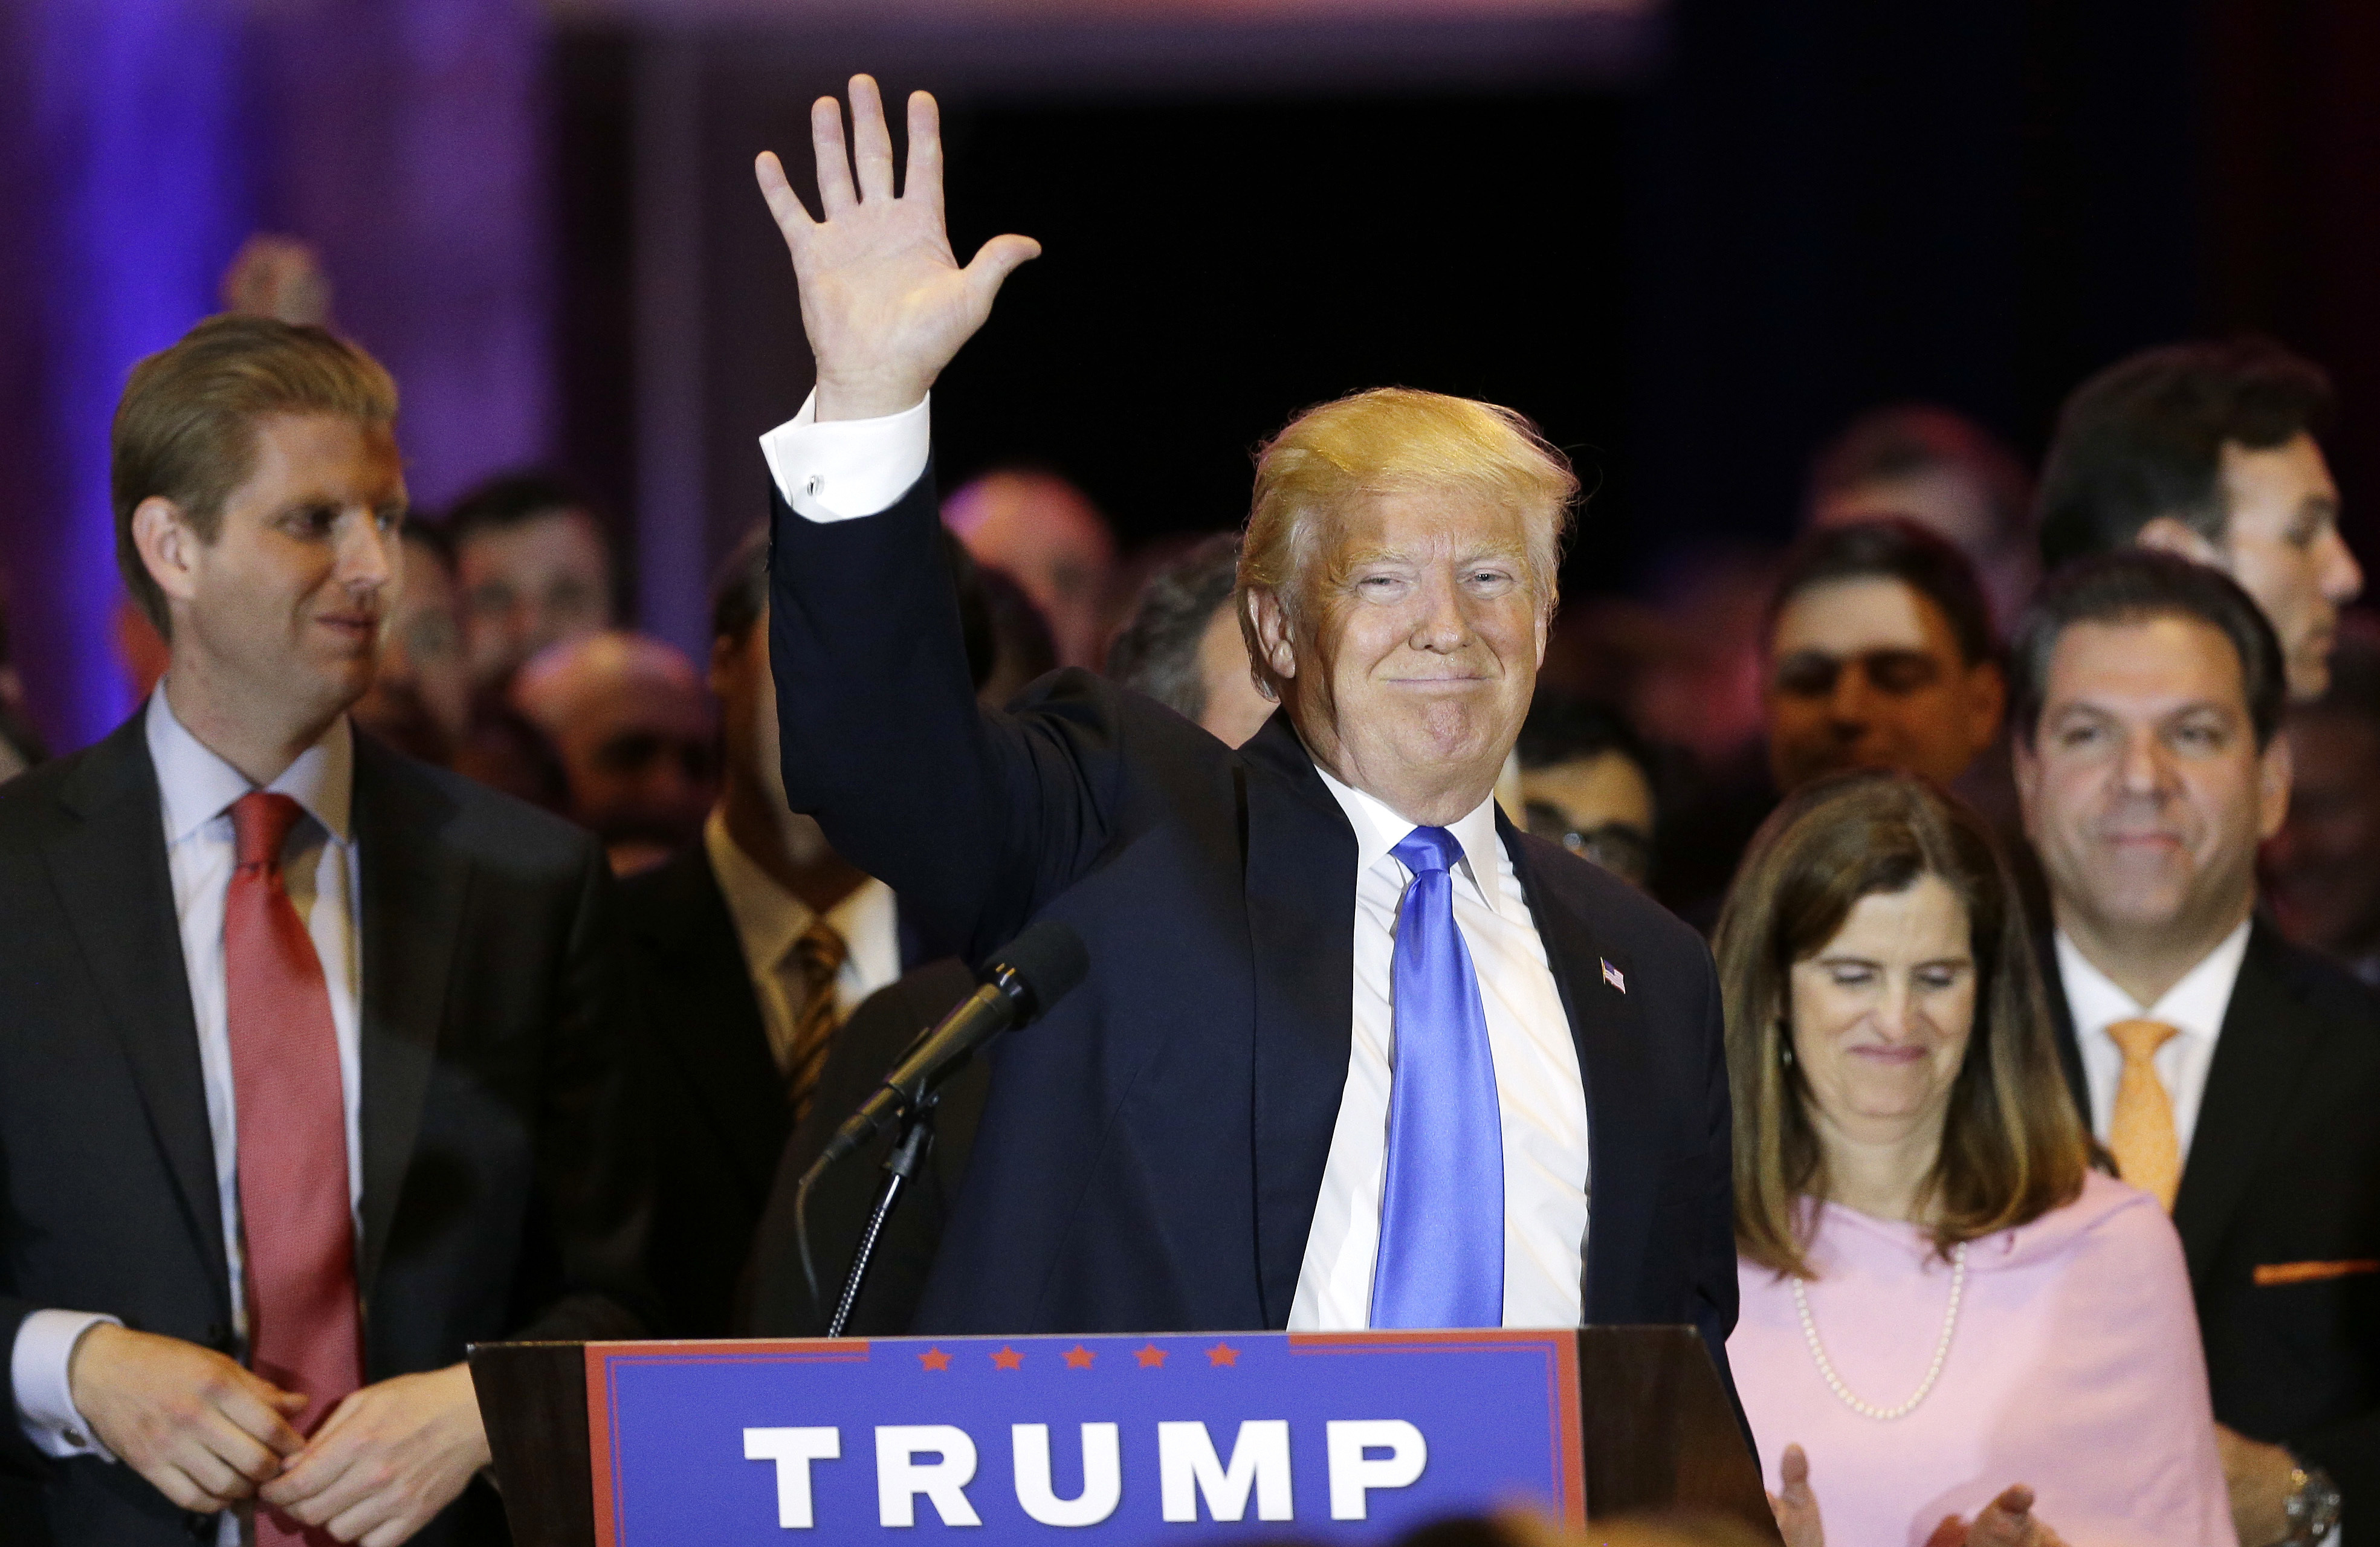 Donald Trump waves after speaking during a primary night event in New York, on April 26, 2016.